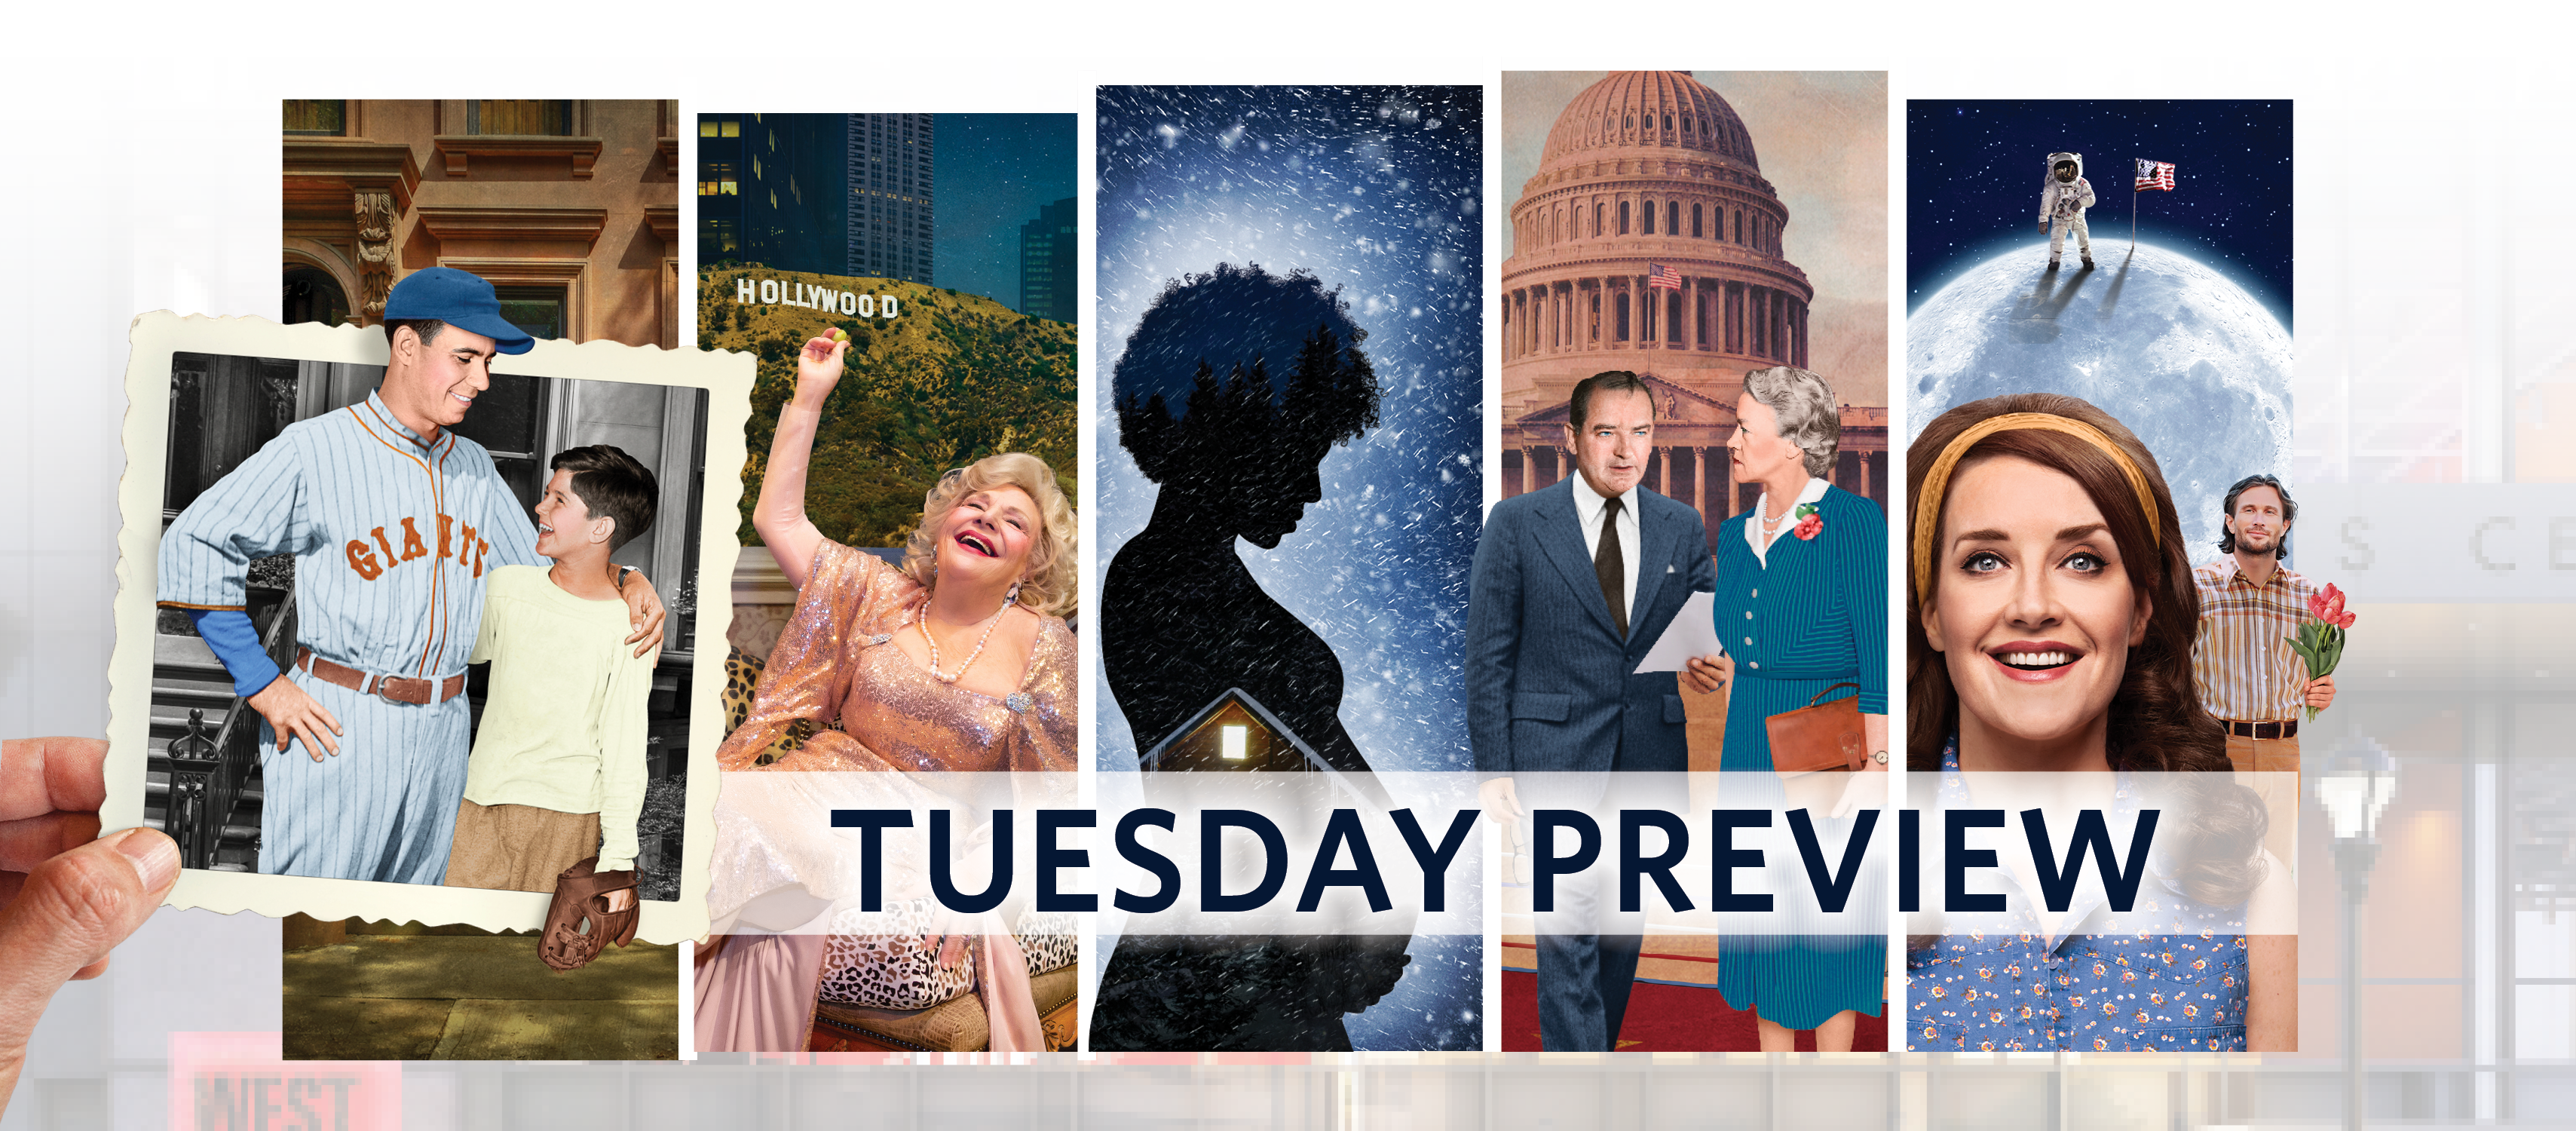 Tuesday Preview